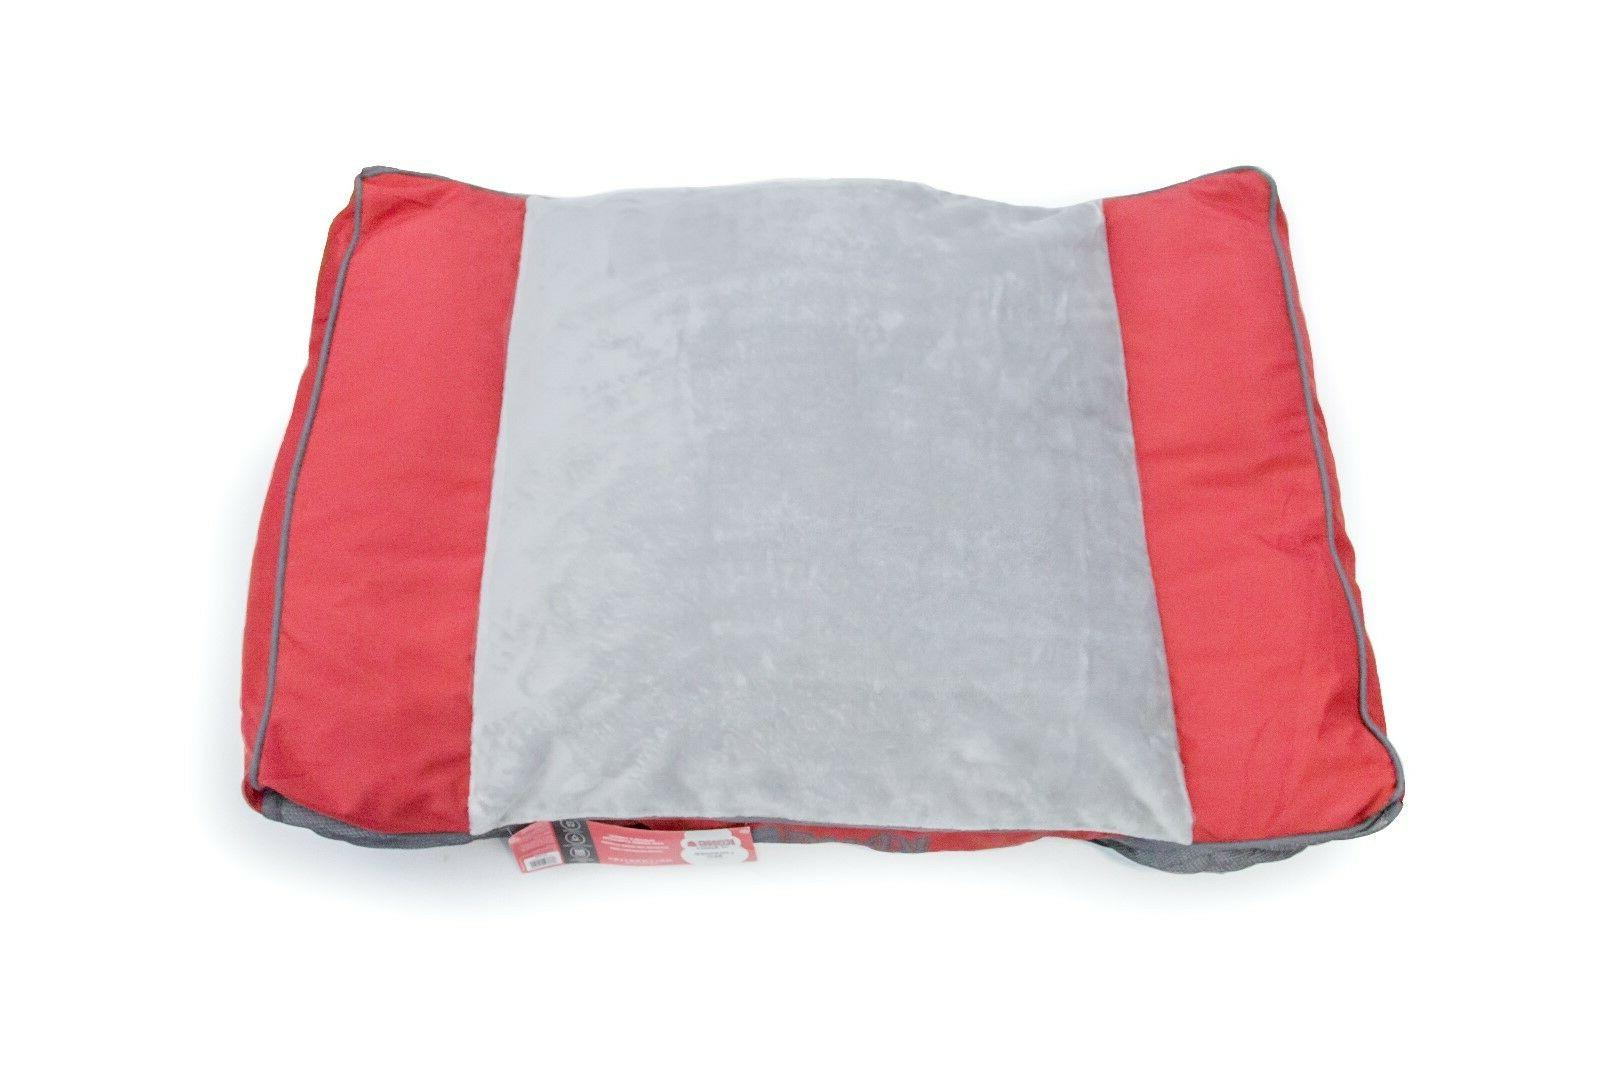 Kong Dog - Red Chew Resistant - Machine Washable Cover